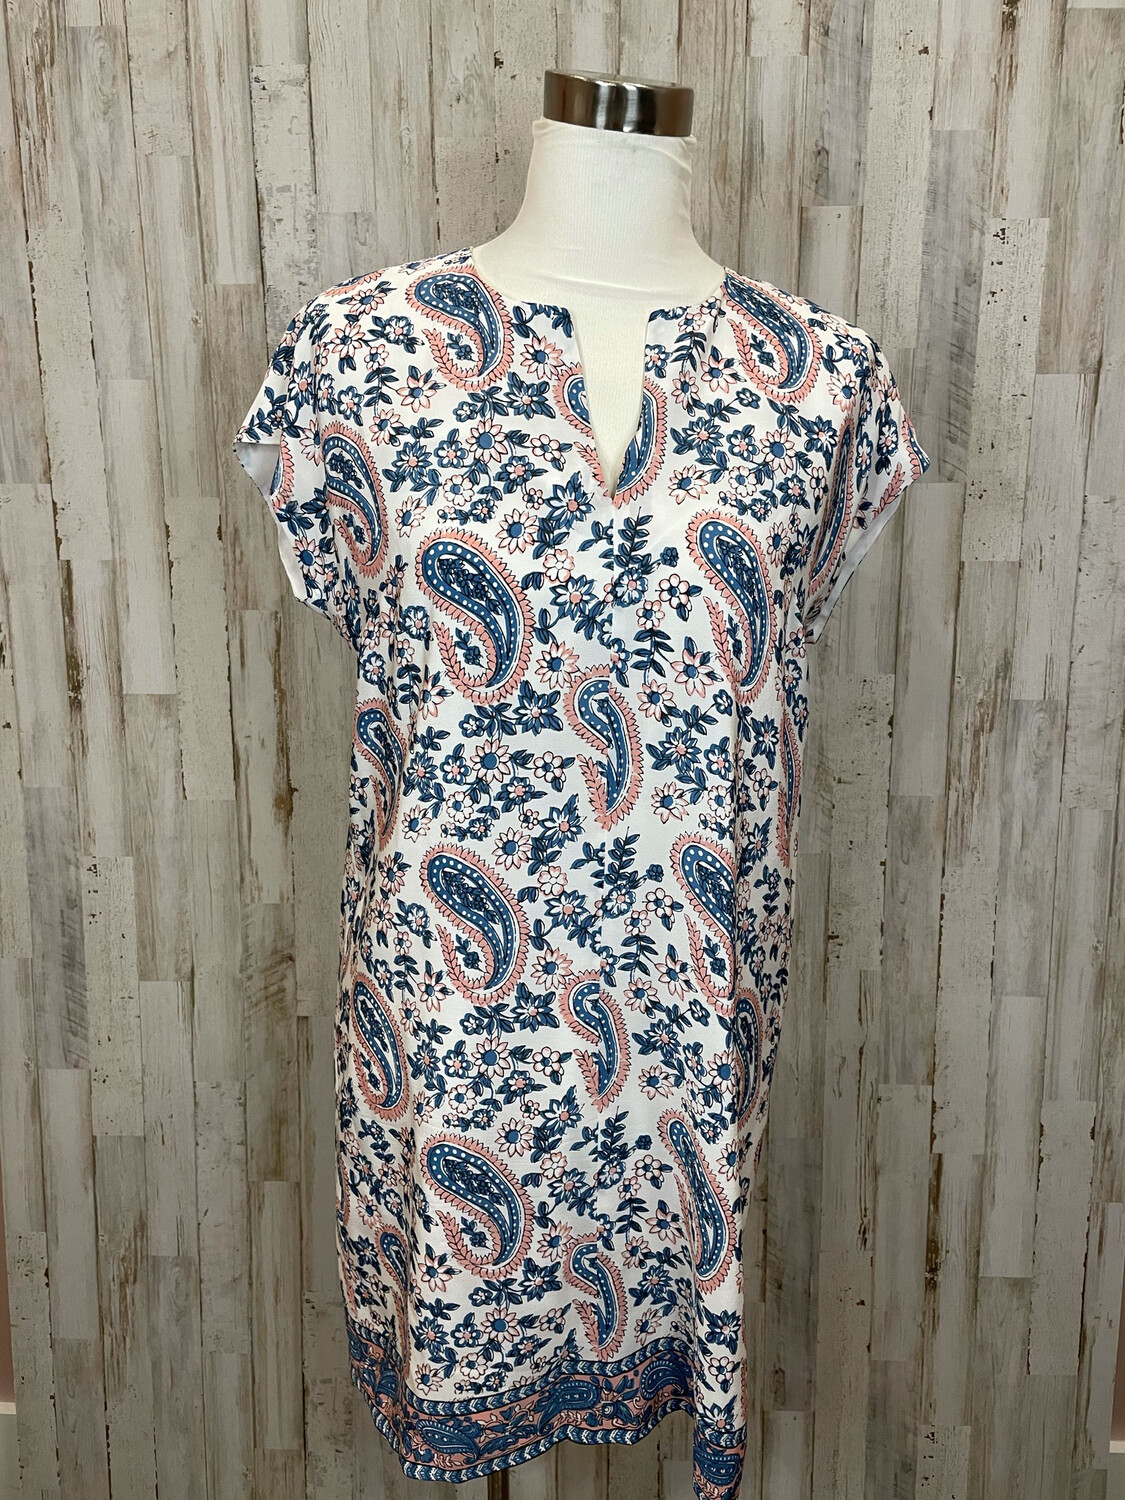 Madewell White Dress w/ Blue & Pink Paisley & Floral Pattern - S